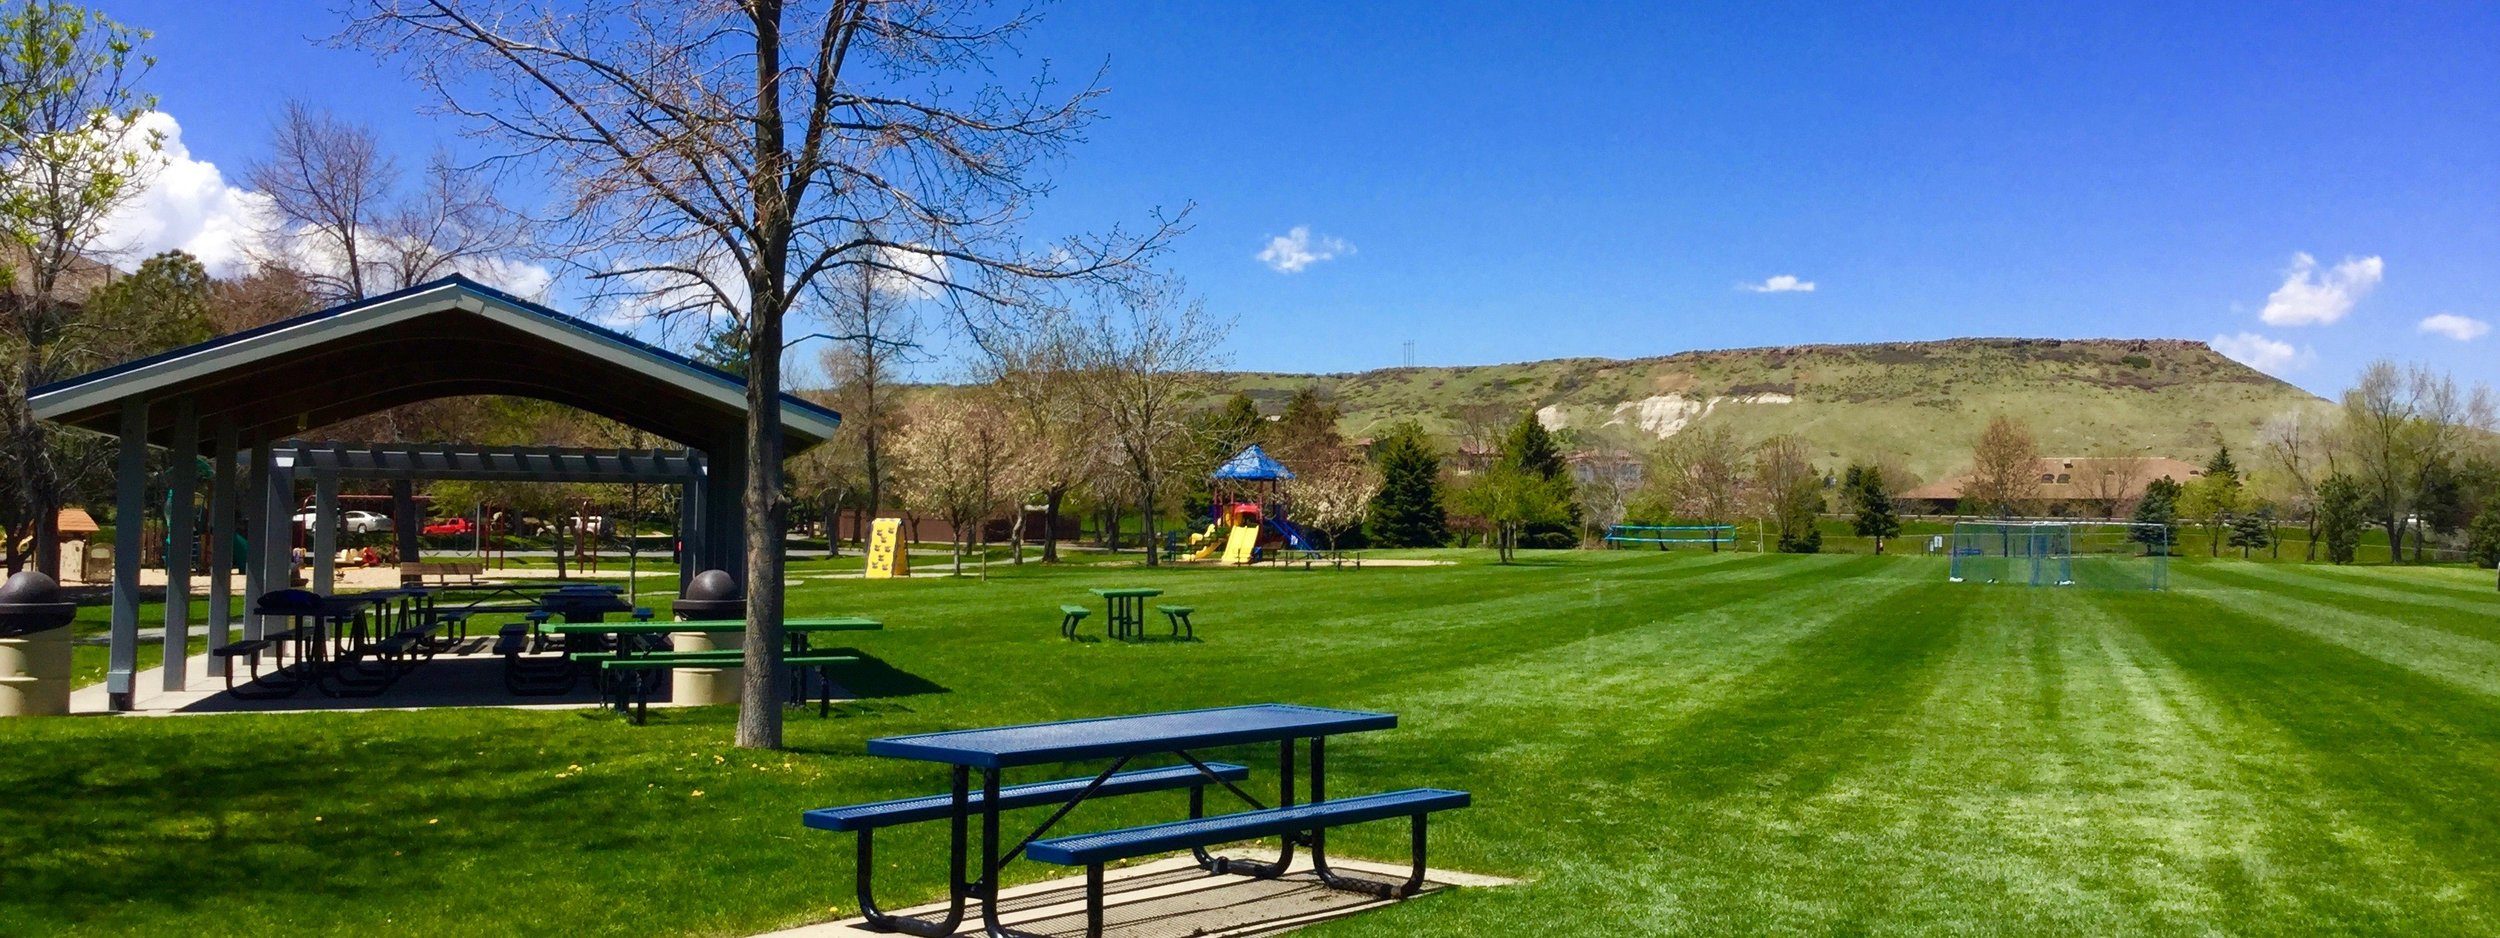 Enjoy the day at Applewood Park. Tennis, swimming, soccer fields and picnic areas